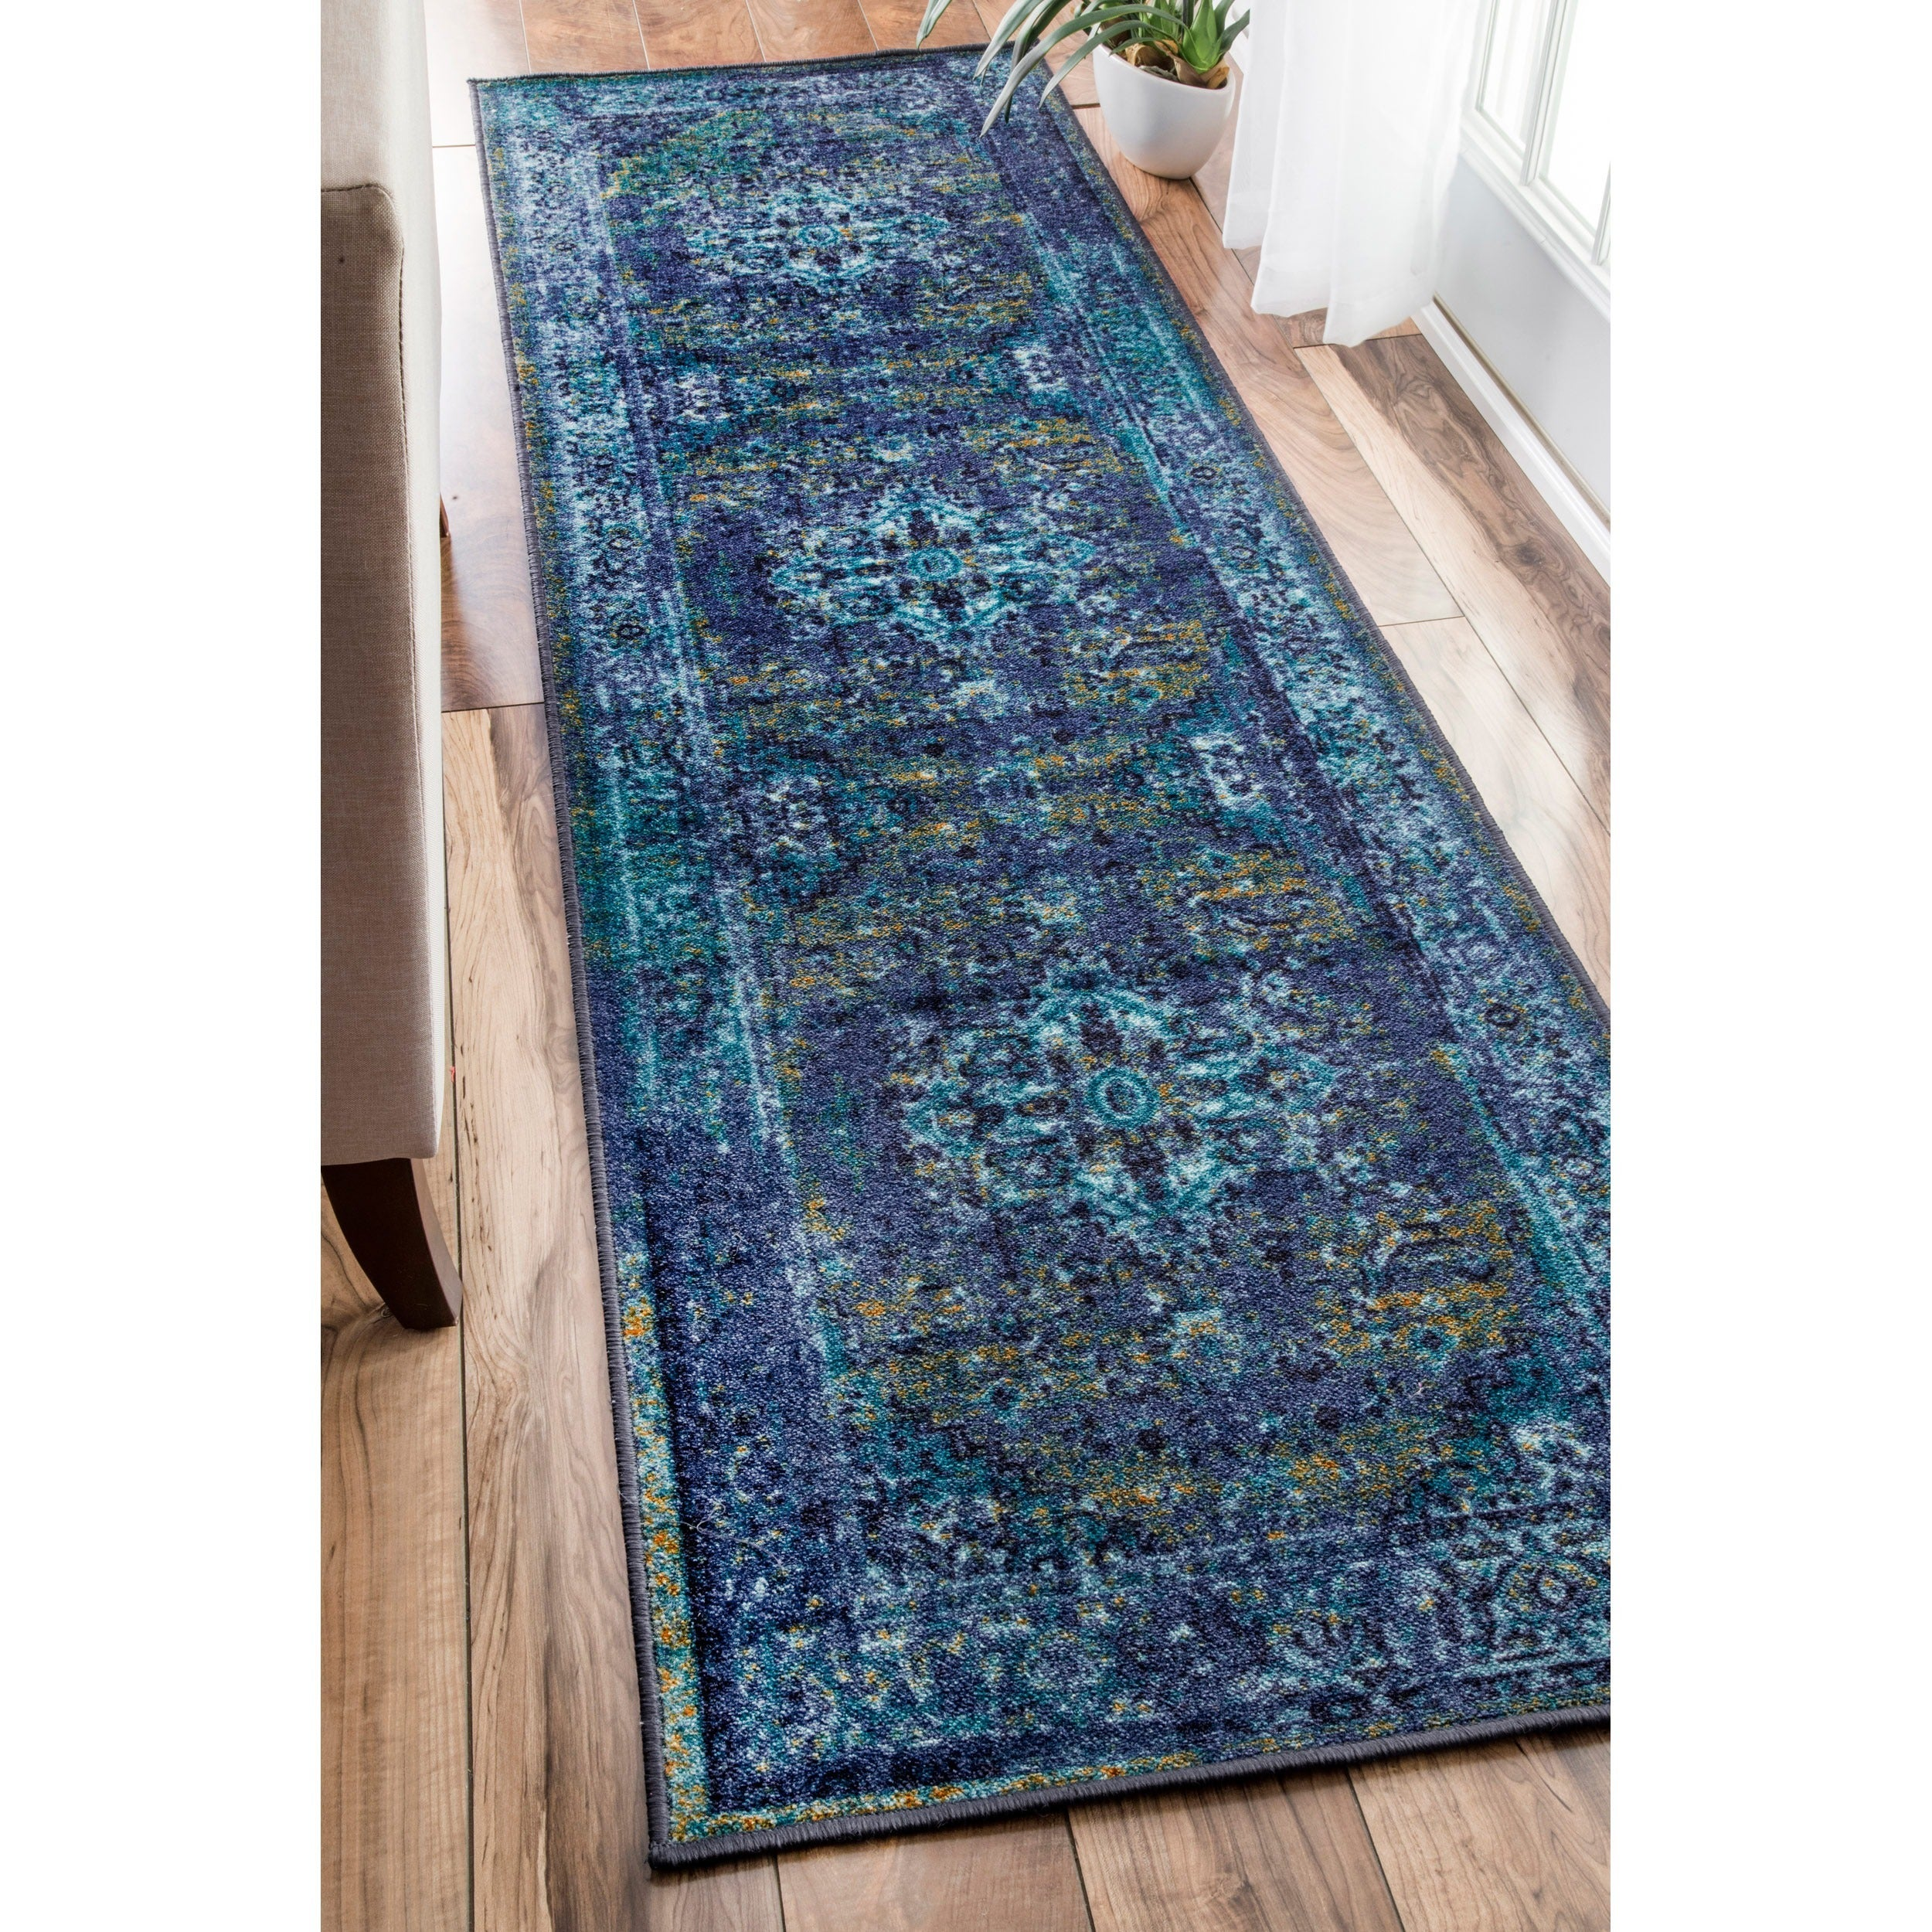 Buy 2\' x 8\' Runner Rugs Online at Overstock.com | Our Best Area Rugs ...